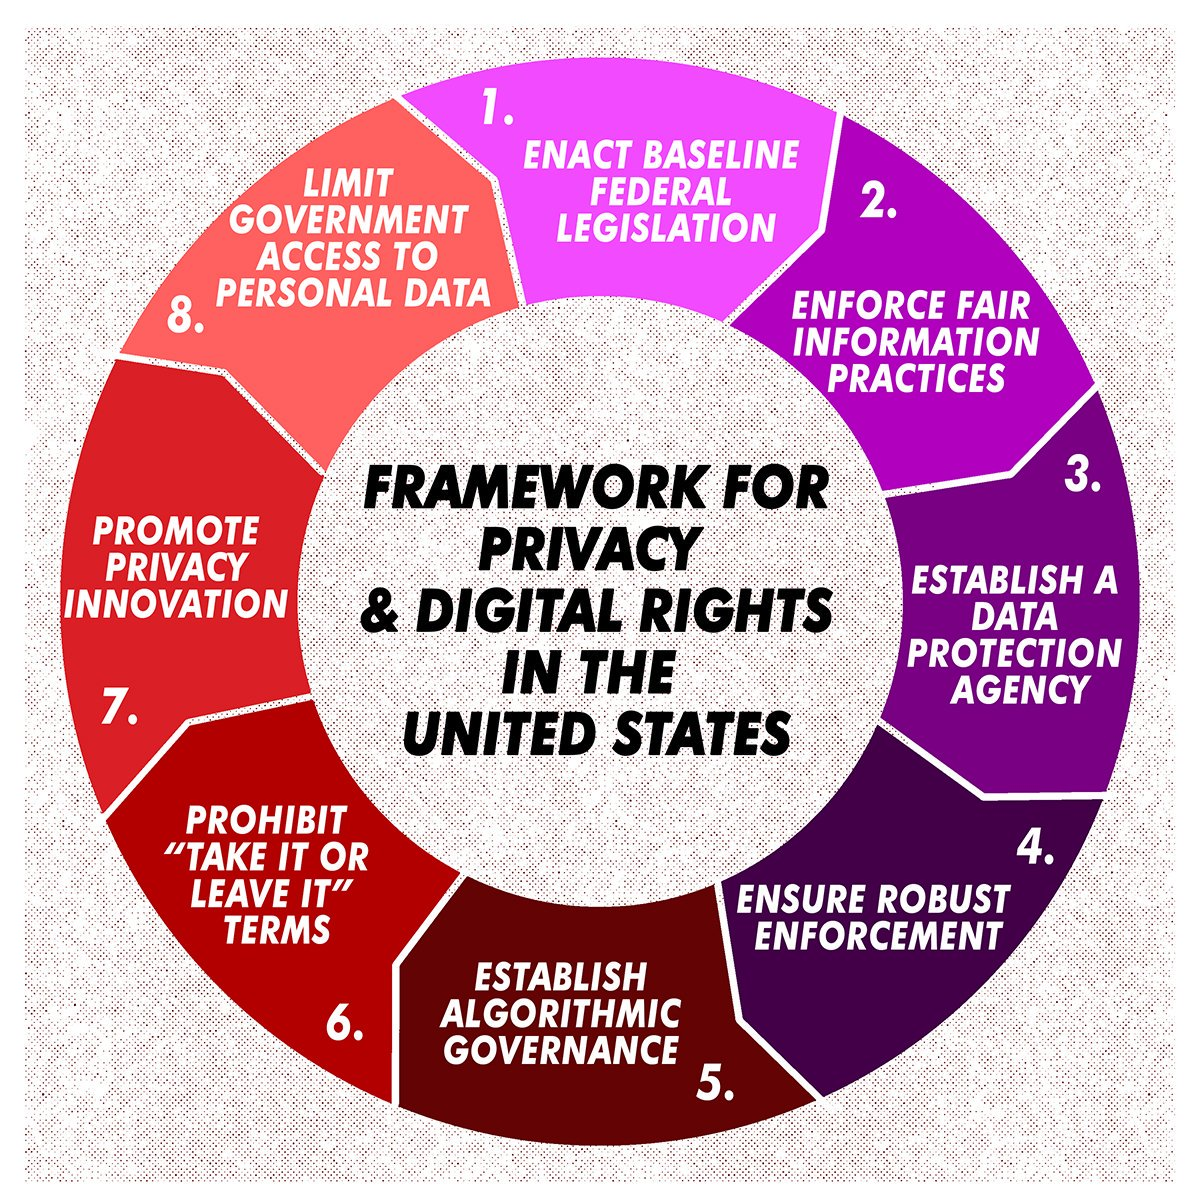 c4cabdc1f543d5 Stop Algorithmic Bias  Turn Two Frameworks into Fair and Just Federal  Privacy Law